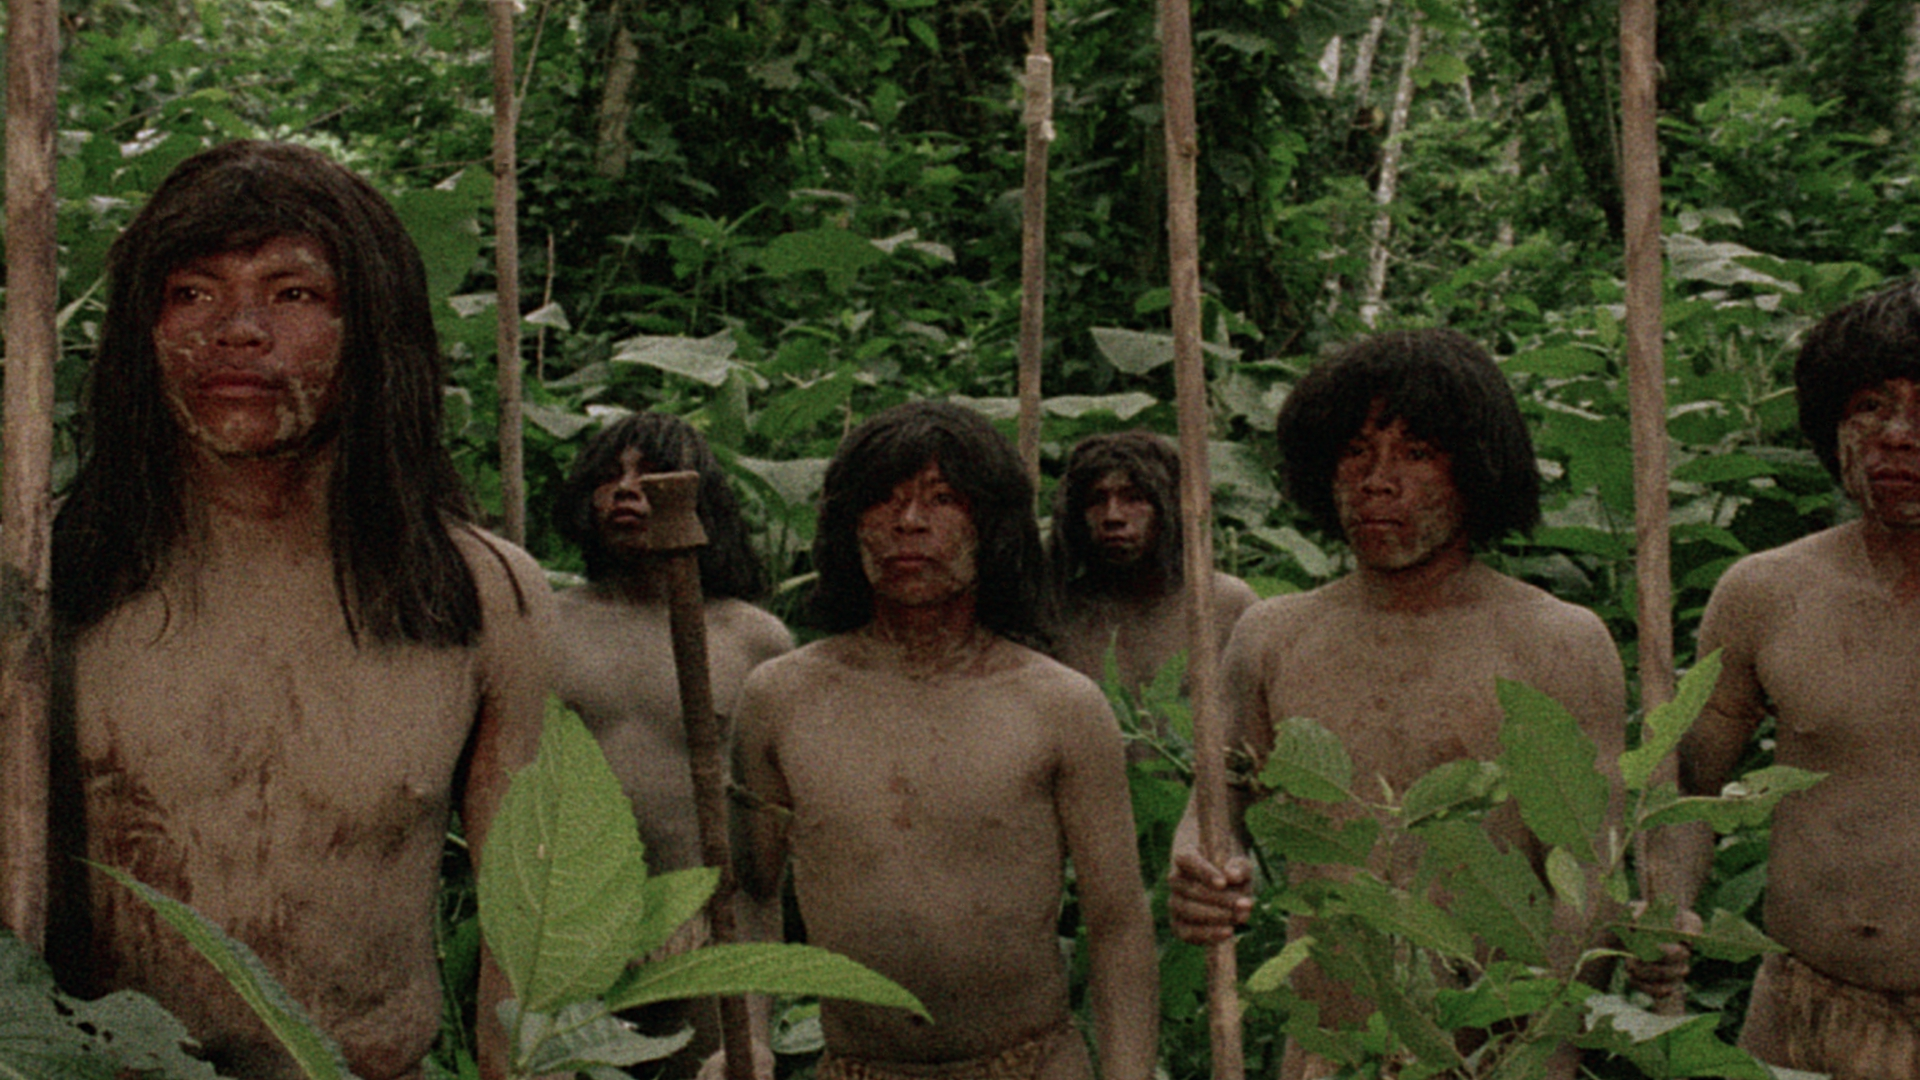 Tasty, Tasty Cannibalism: Shameless Presents 'Mountain of the Cannibal God' and 'Cannibal Ferox' on Blu-ray and DVD